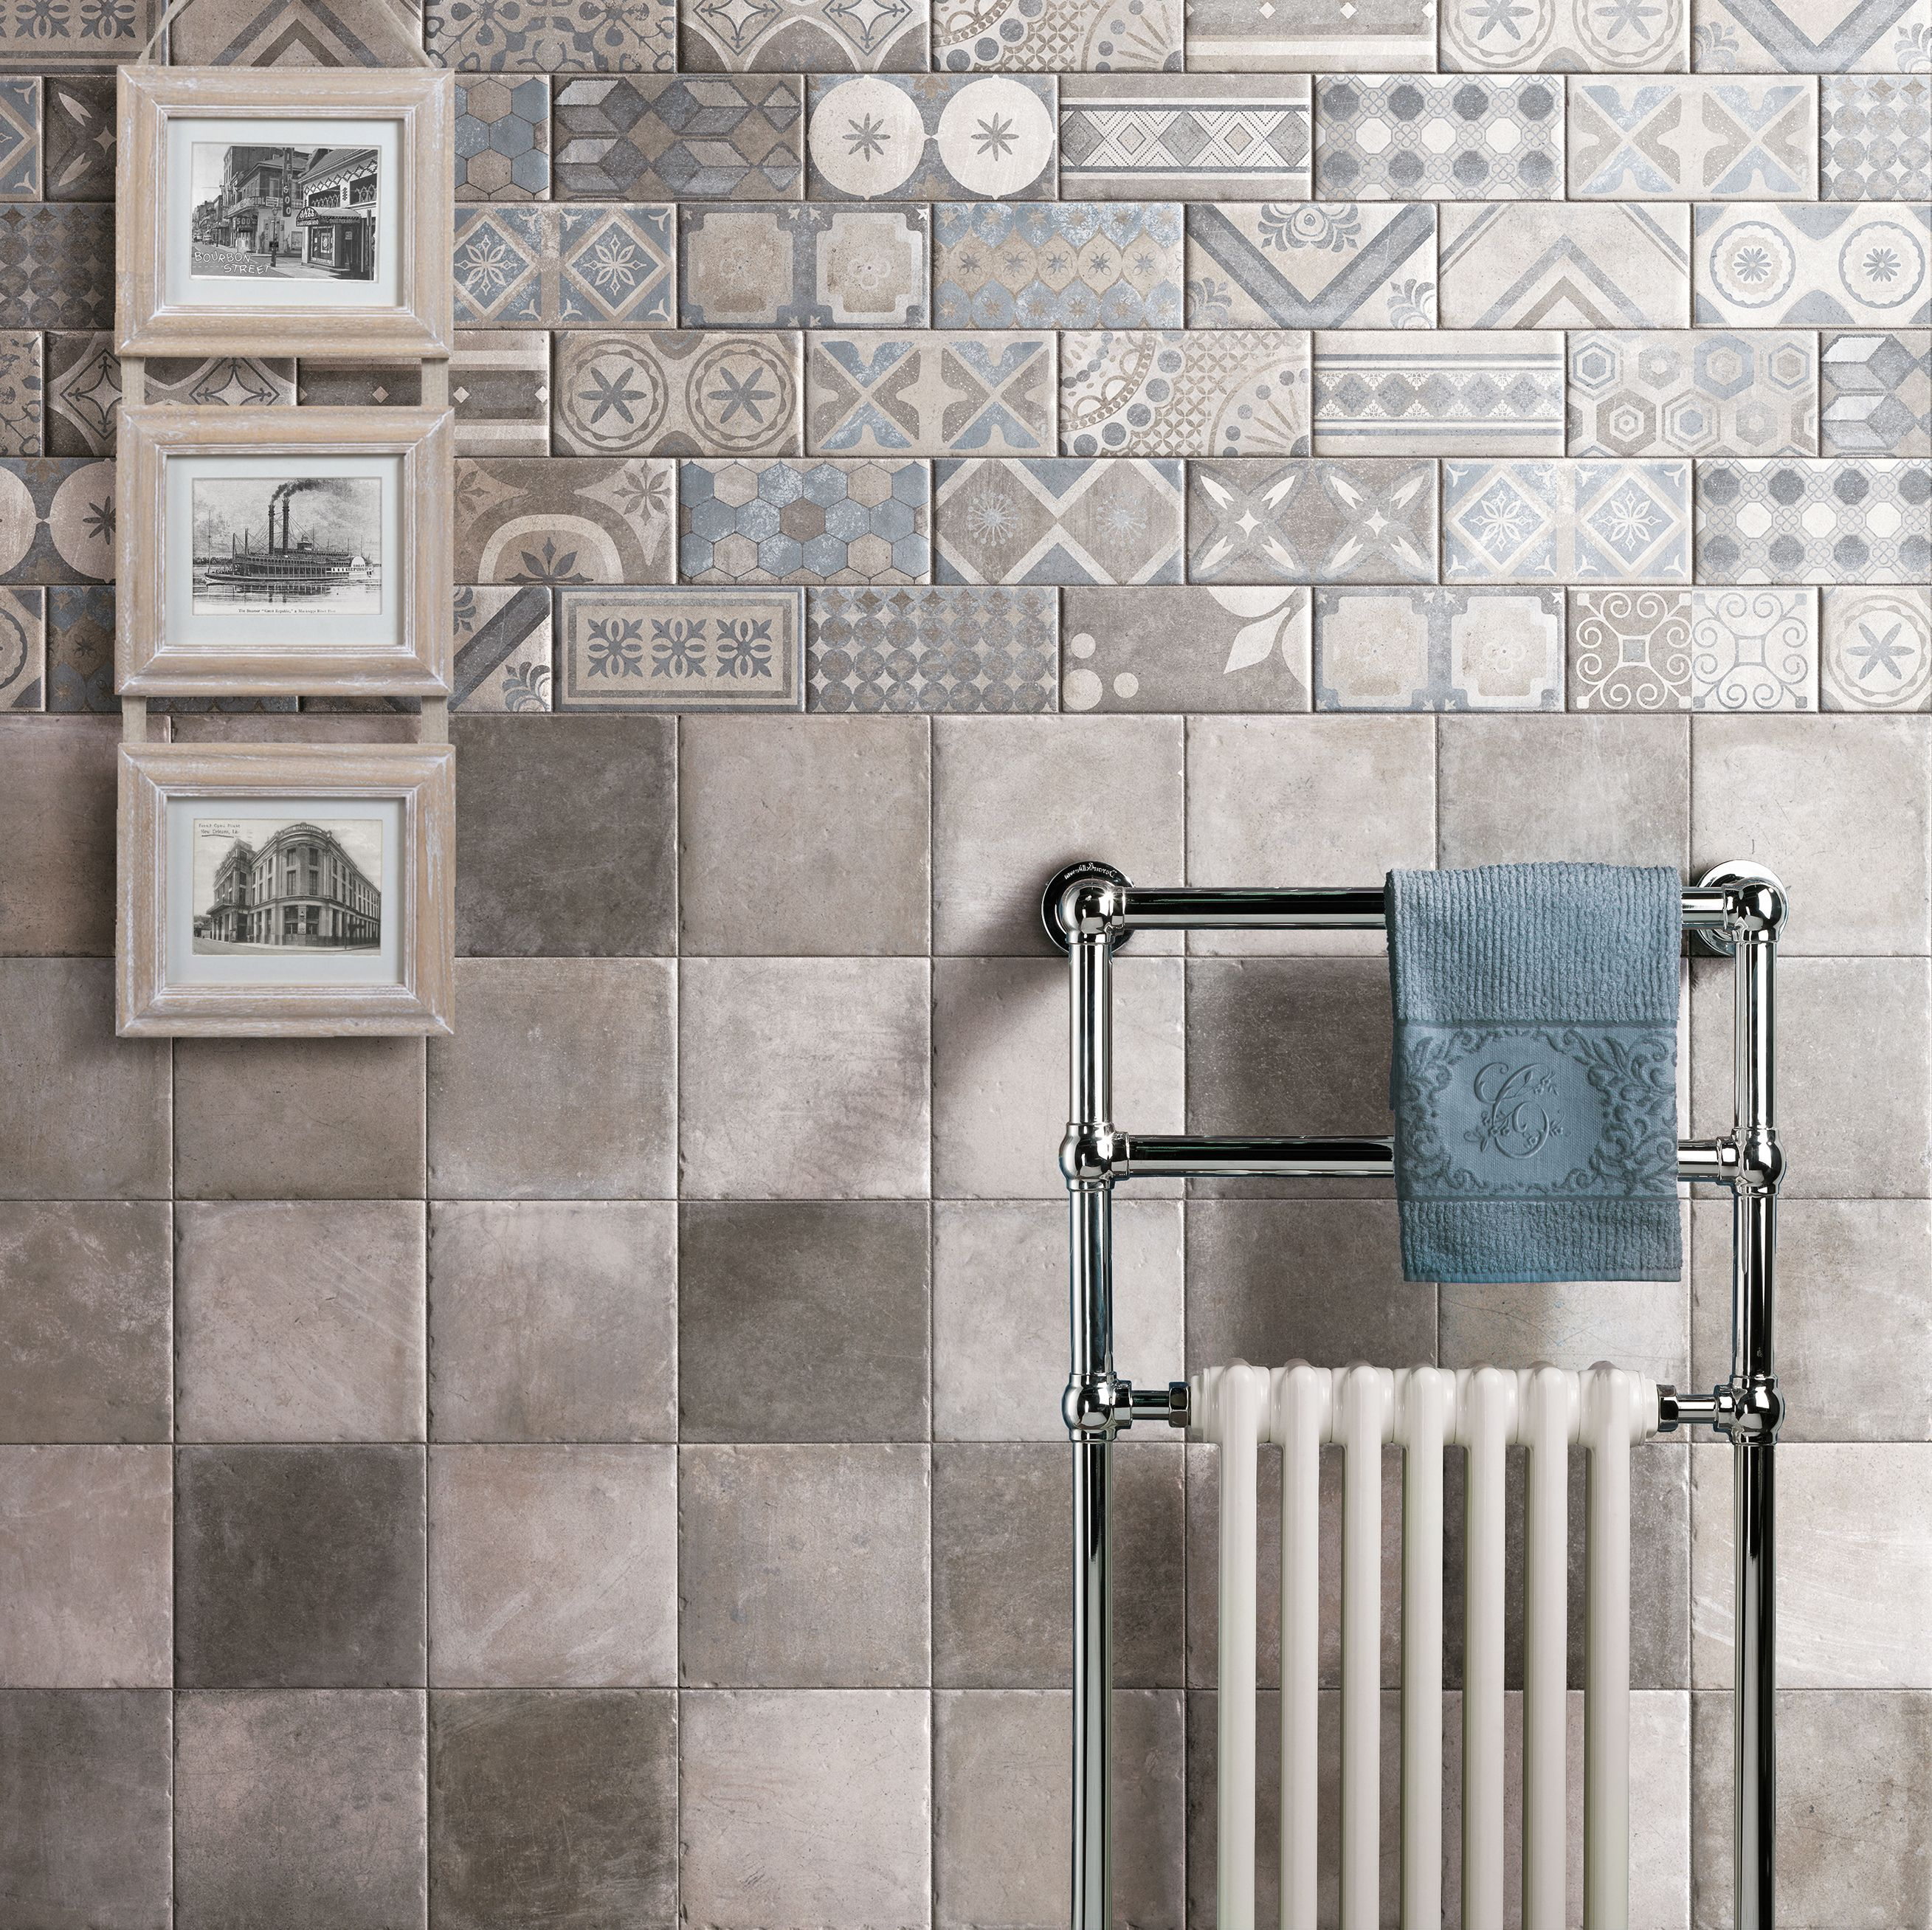 Pin di cir manifatture ceramiche su brick time pinterest for Piastrelle 40x40